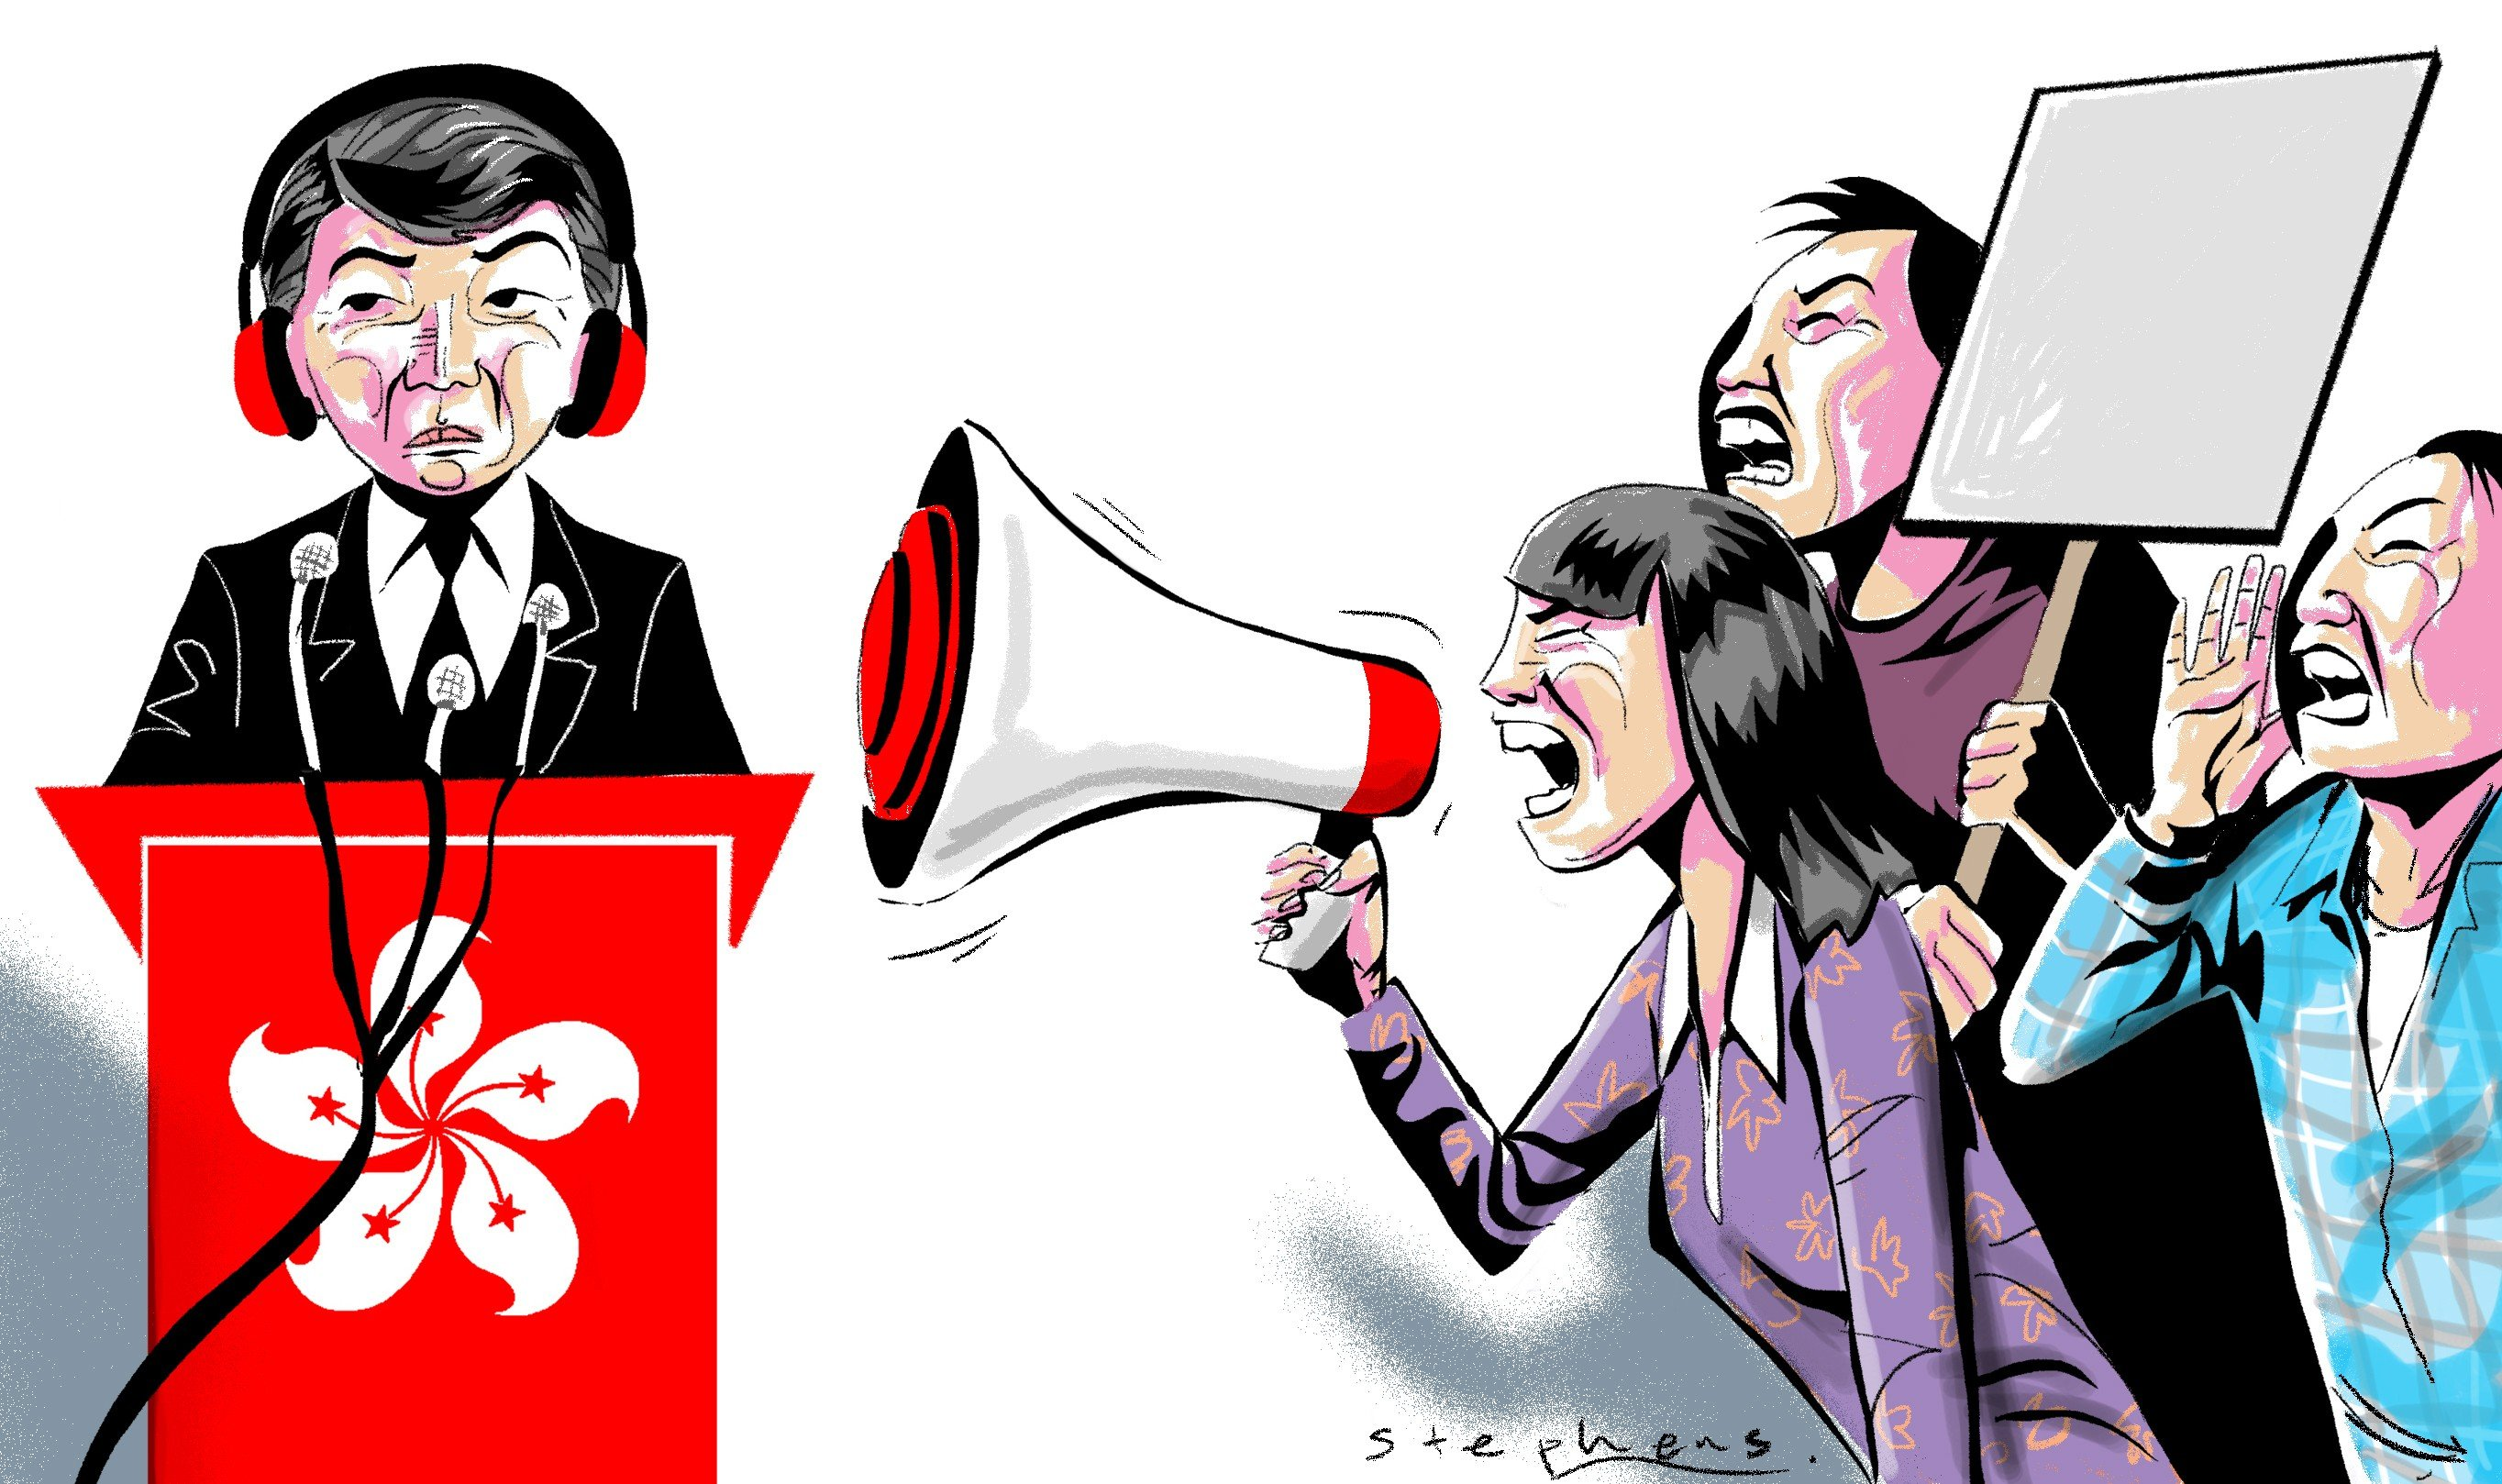 3627d09df With the extradition bill, Hong Kong finds itself in another of its long  parade of crises. If these crises have one thing in common, it is that they  are all ...